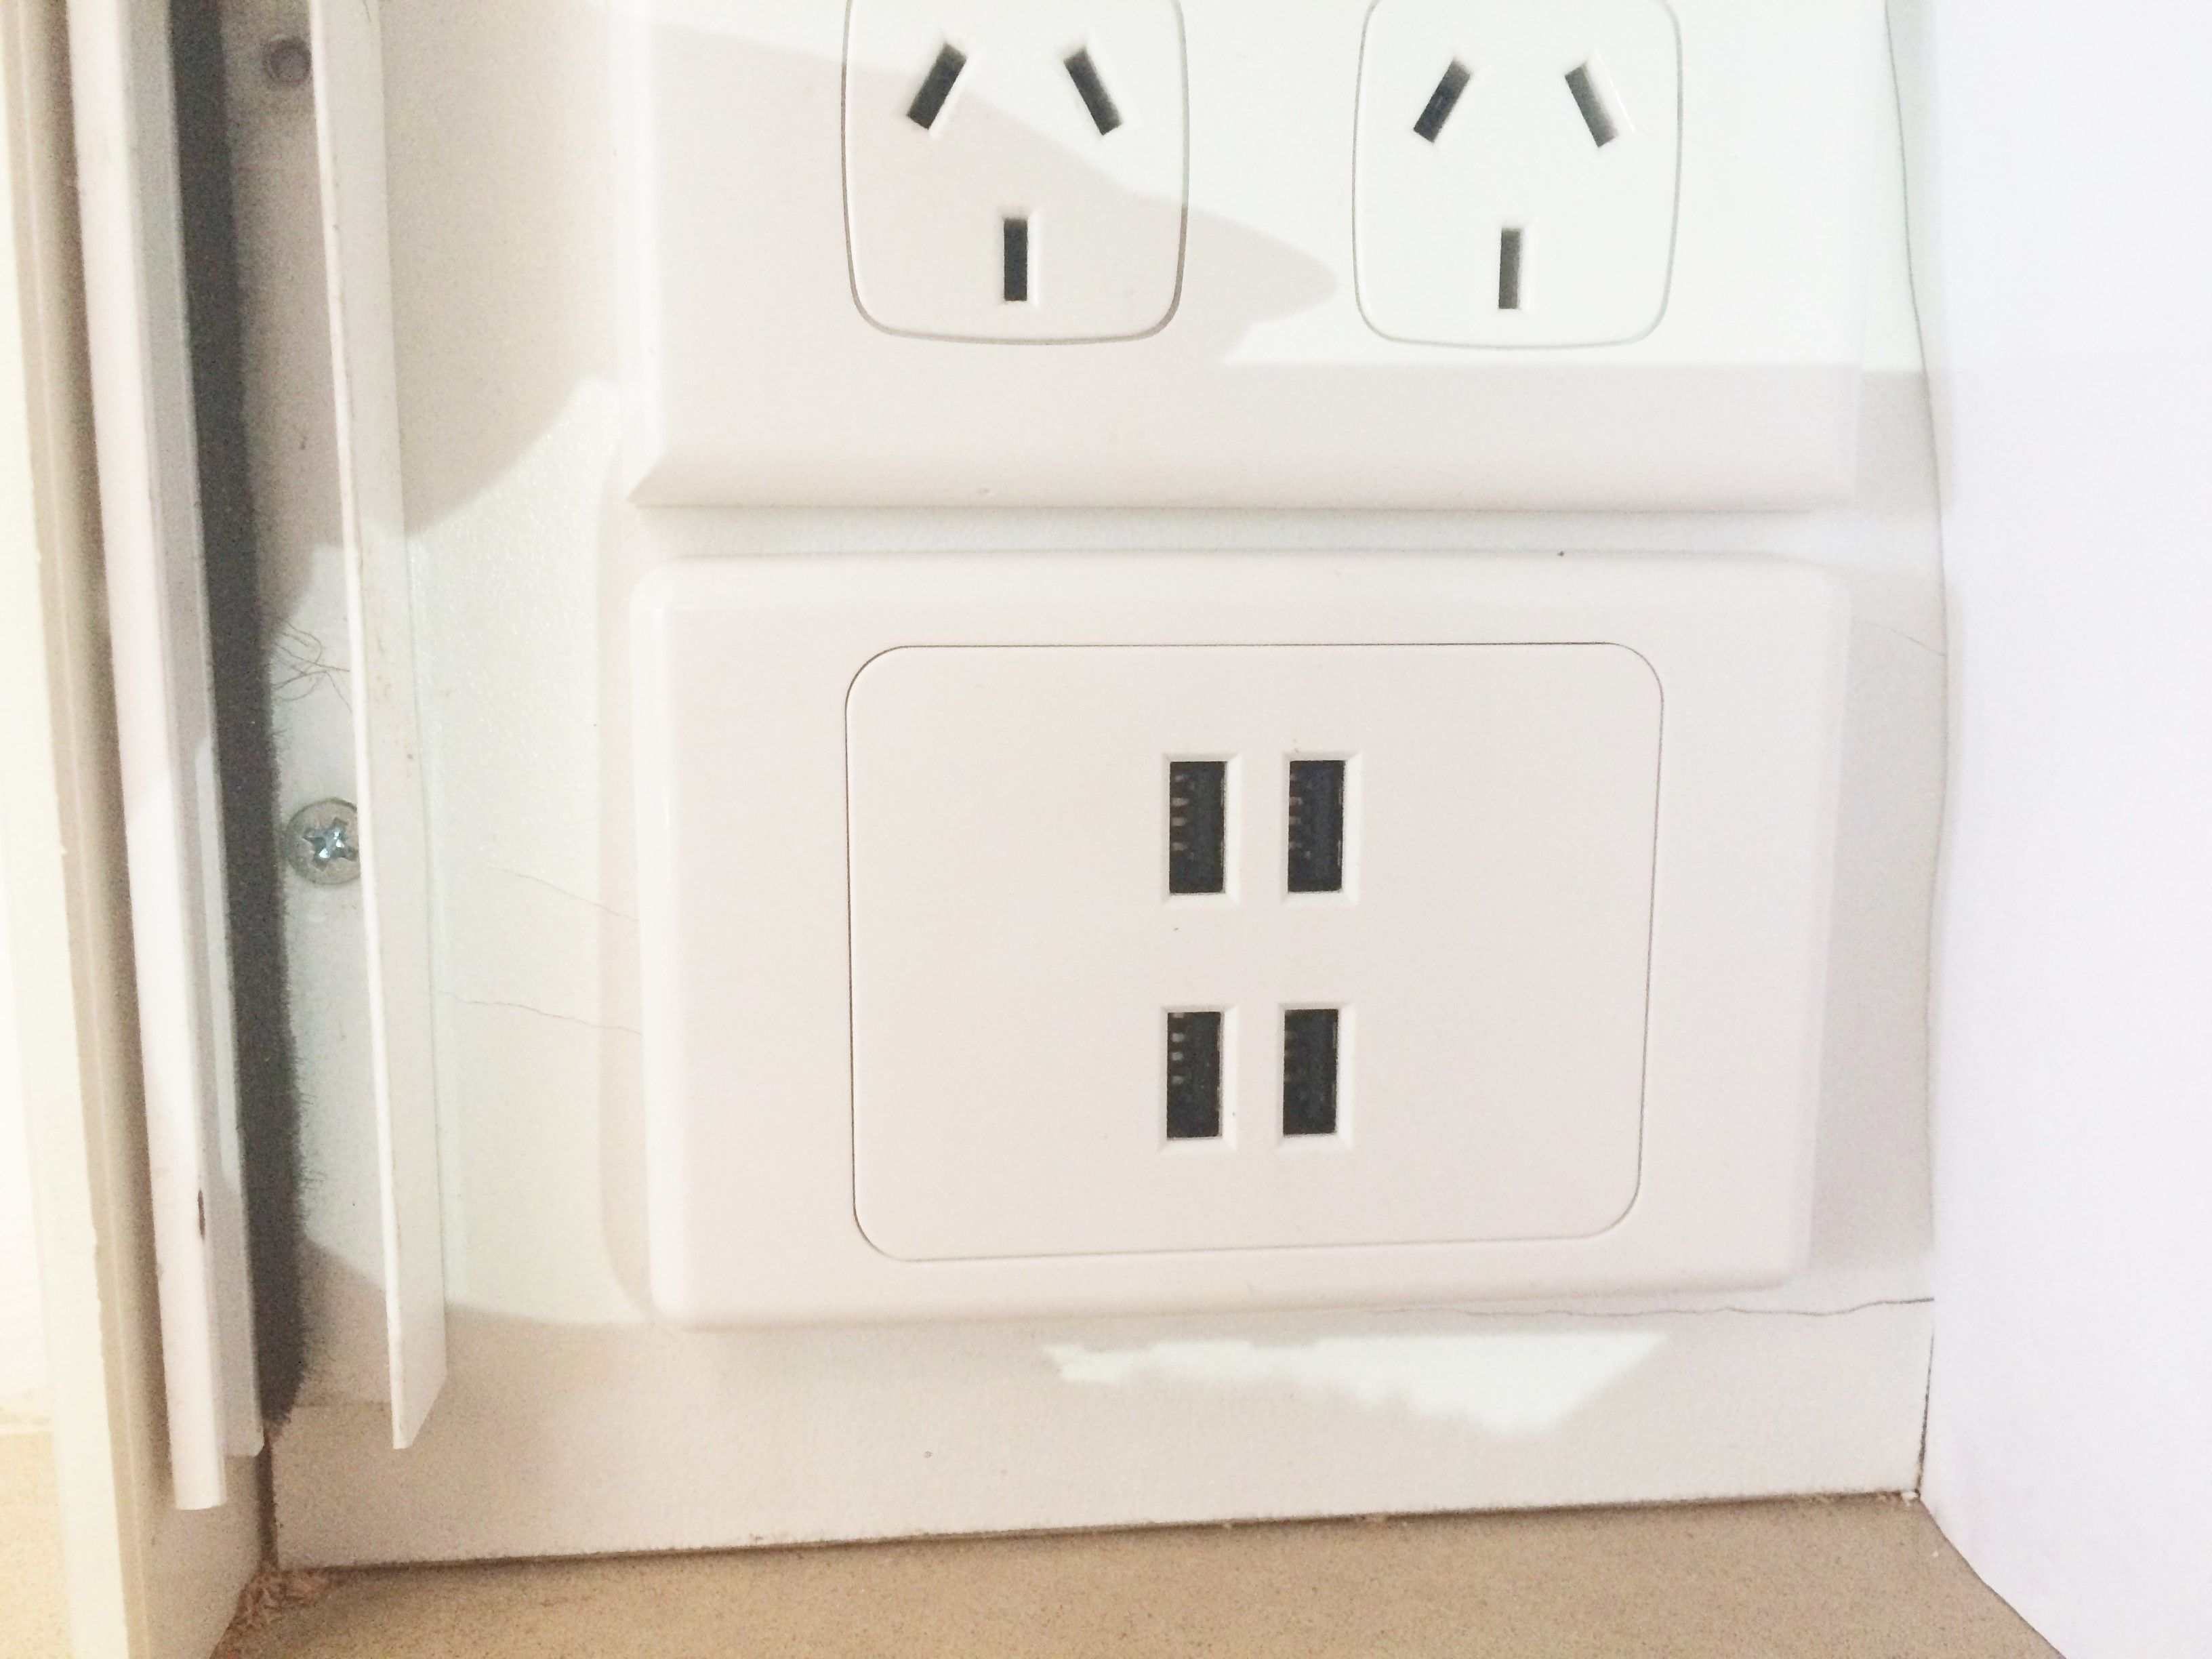 Usb Powerpoint 4 Port, Hidden In Wall Cupboard With Poweroint